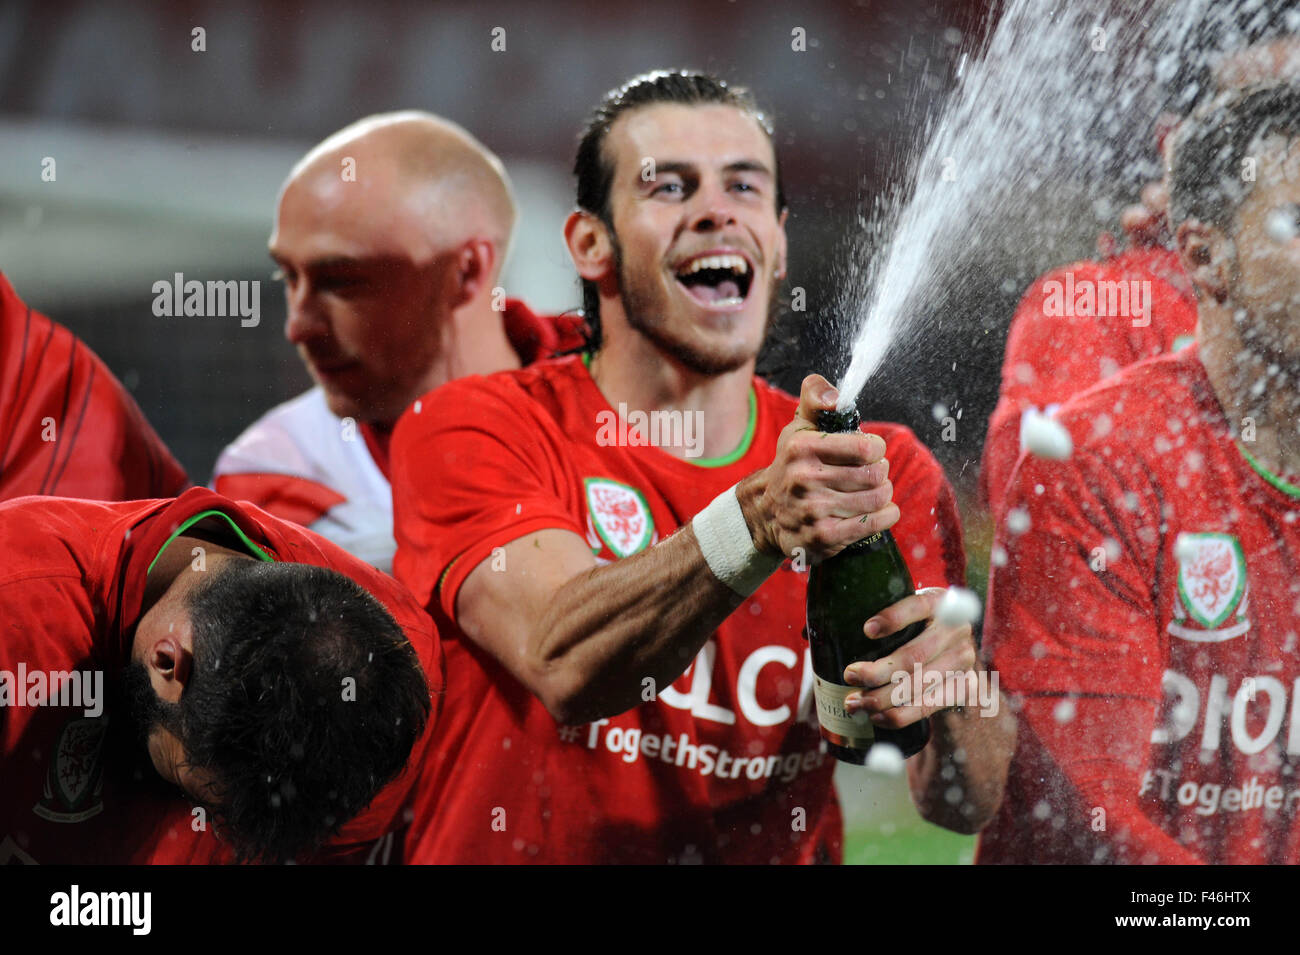 UEFA EURO 2016 Qualifier match between Wales and Andorra at Cardiff City Stadium in Cardiff :  Gareth Bale celebrating - Stock Image